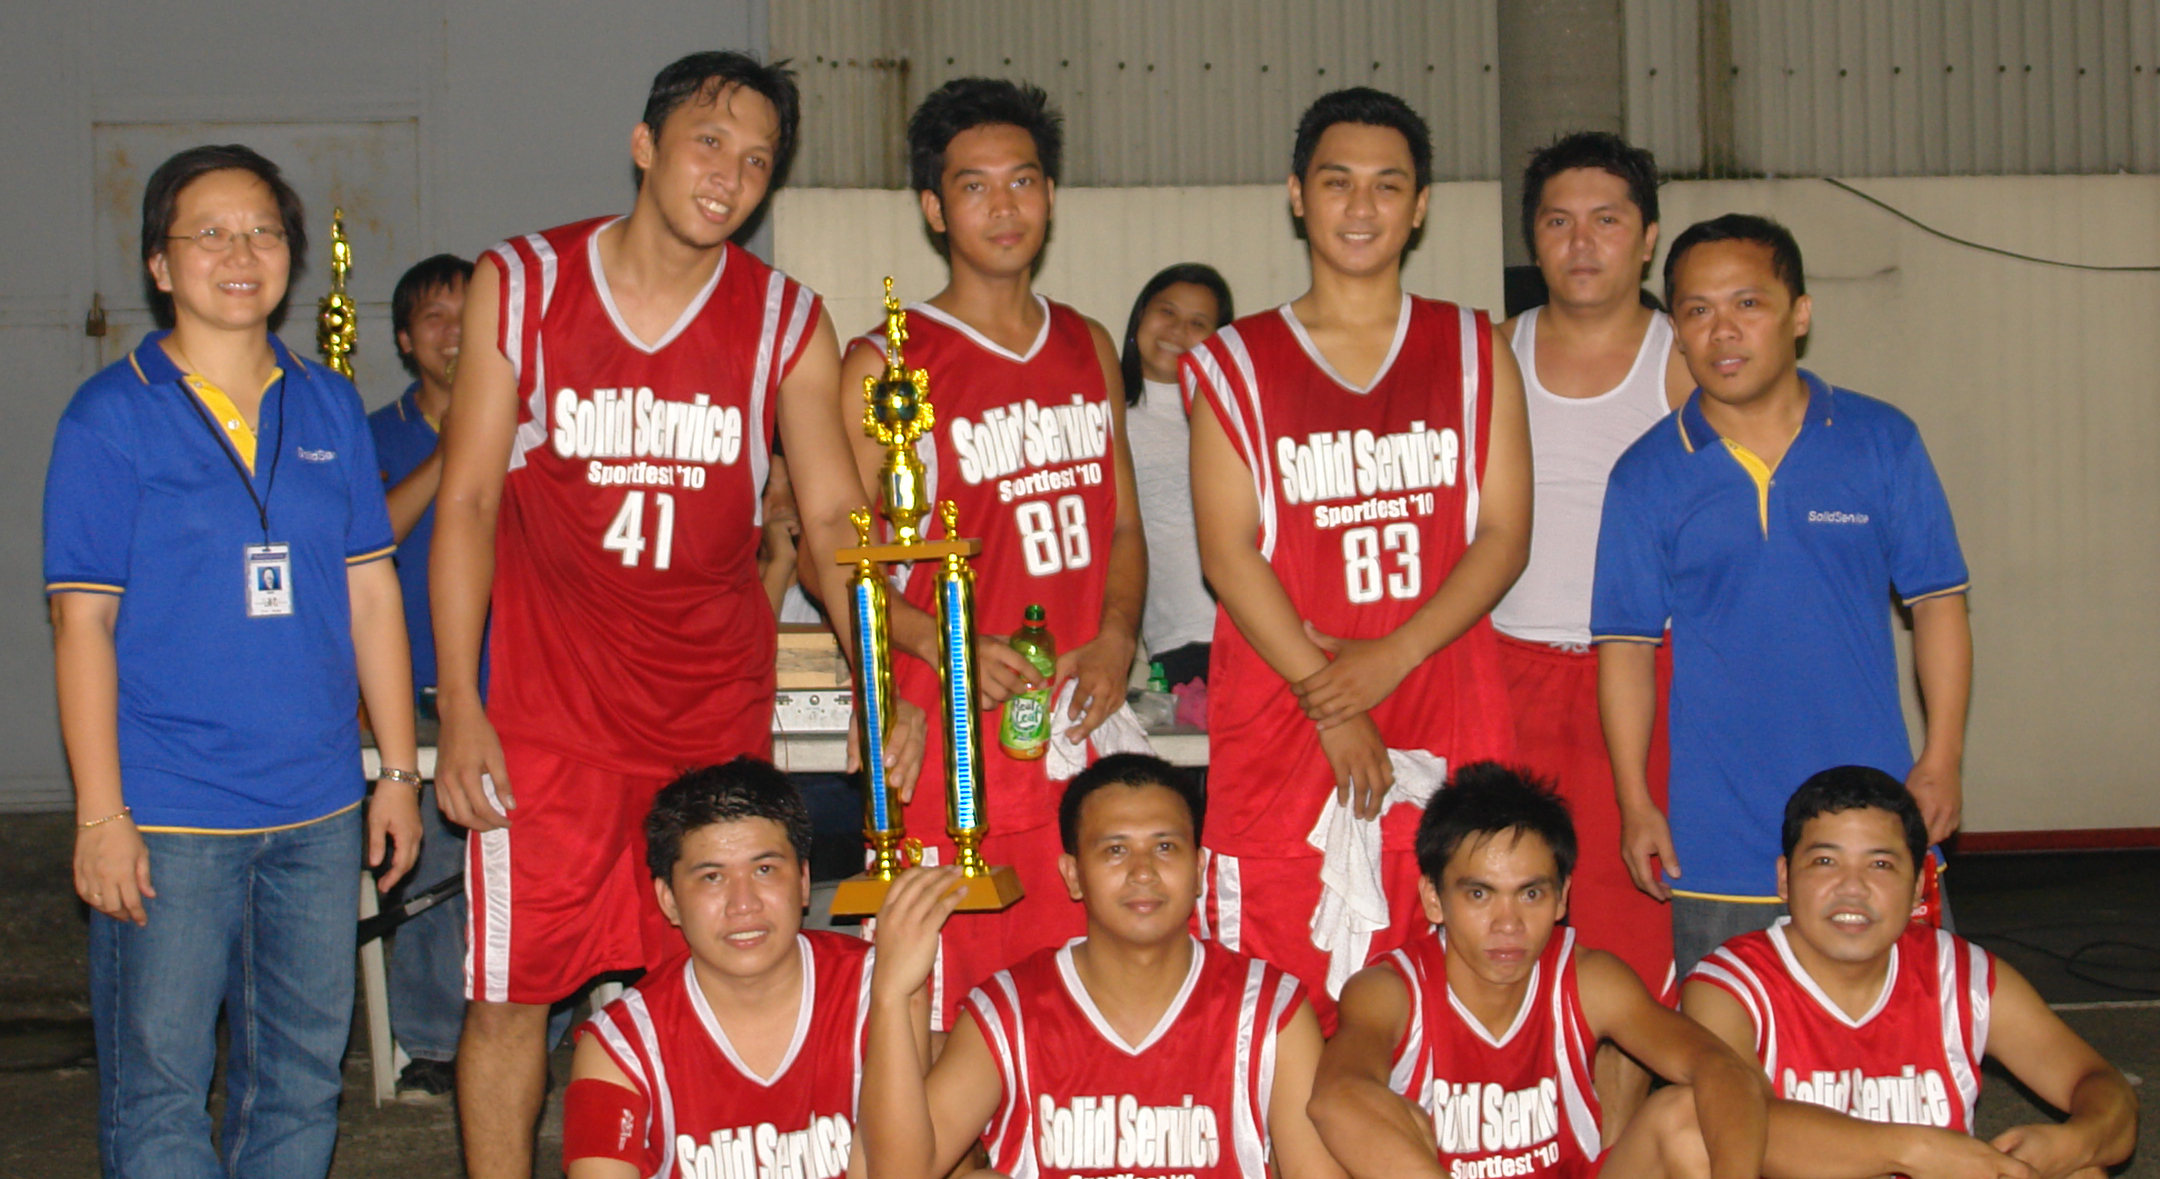 1st PLACE: SOLID - RED & WHITE TEAM -